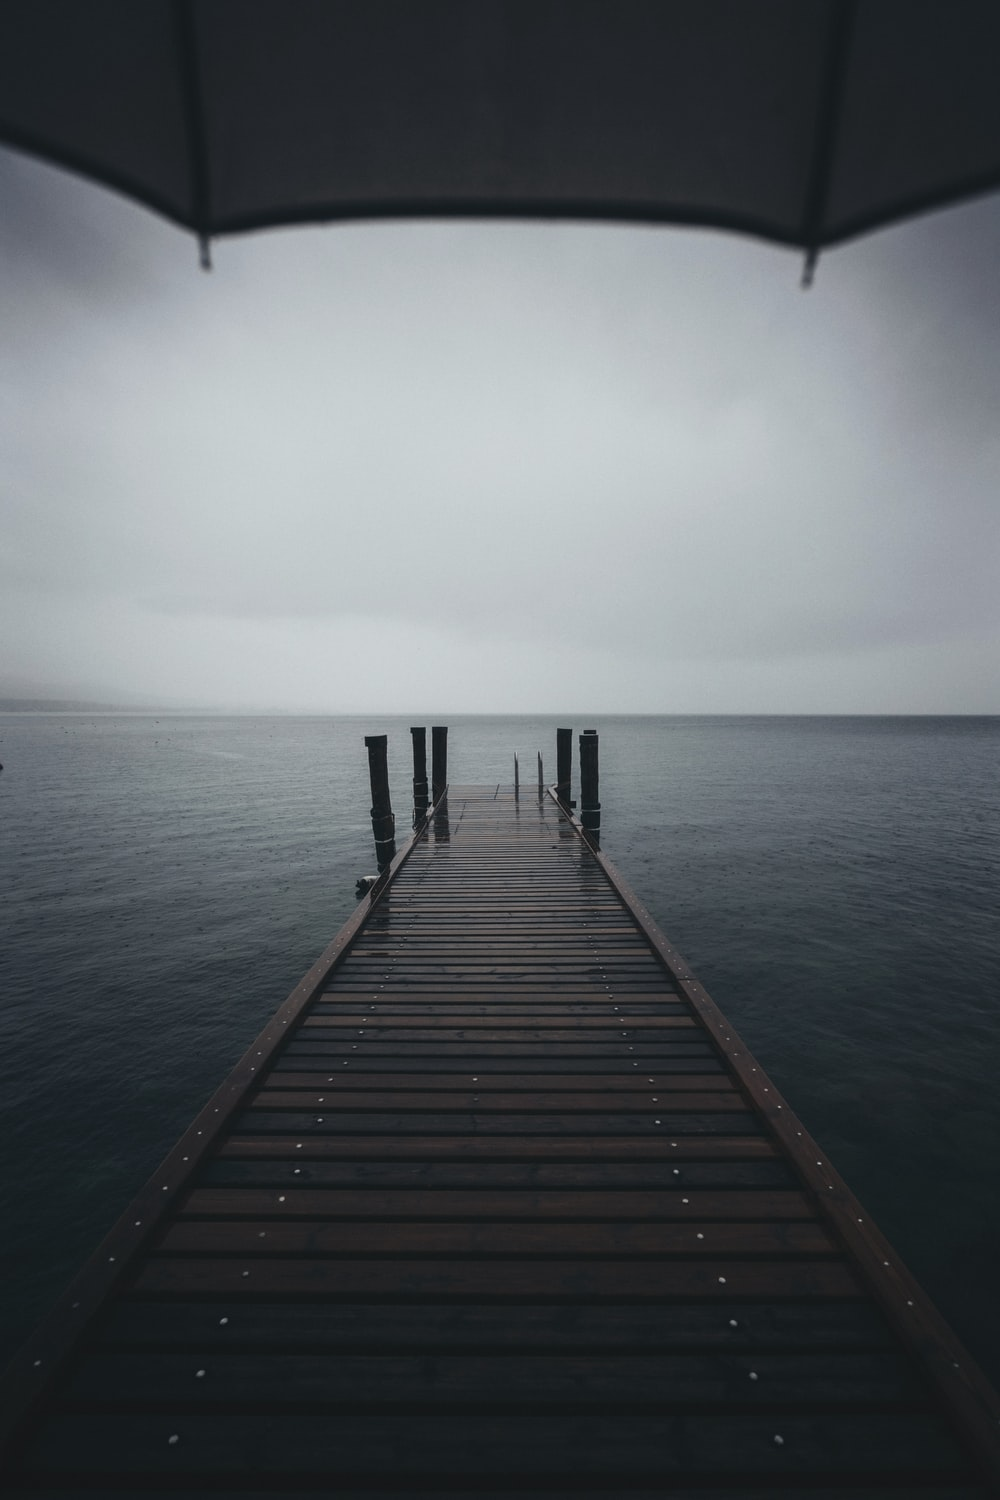 brown wooden dock near body of water at daytime